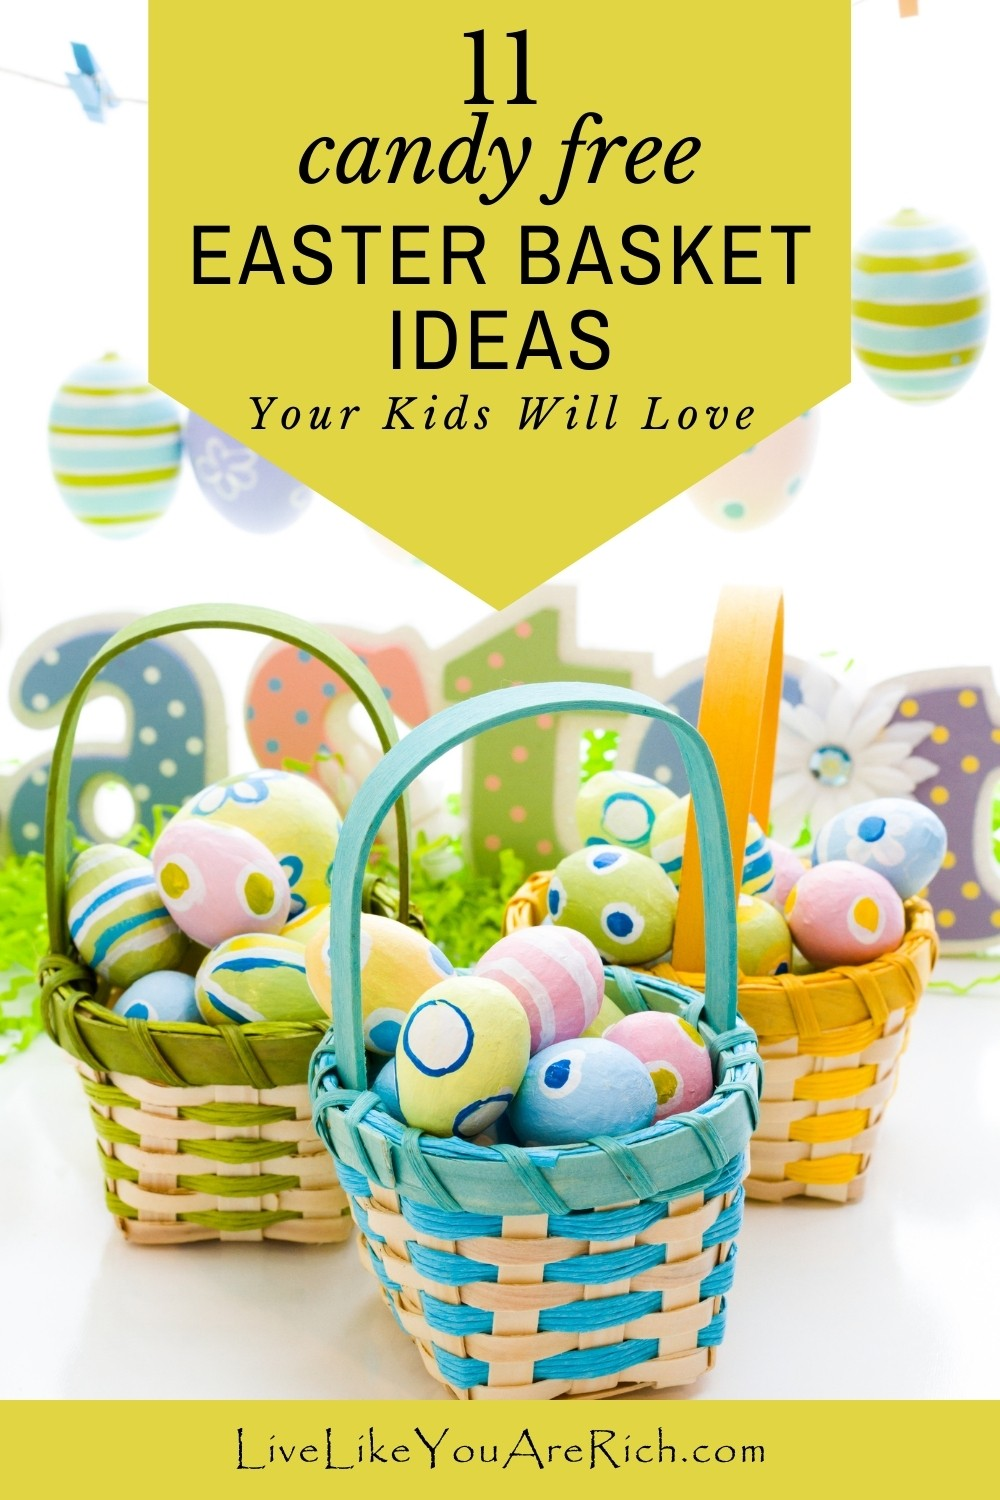 Easter is here which means it's time to start preparing those Easter baskets. I rounded up these 11 Easter Basket Ideas for Kids (Candy Free).